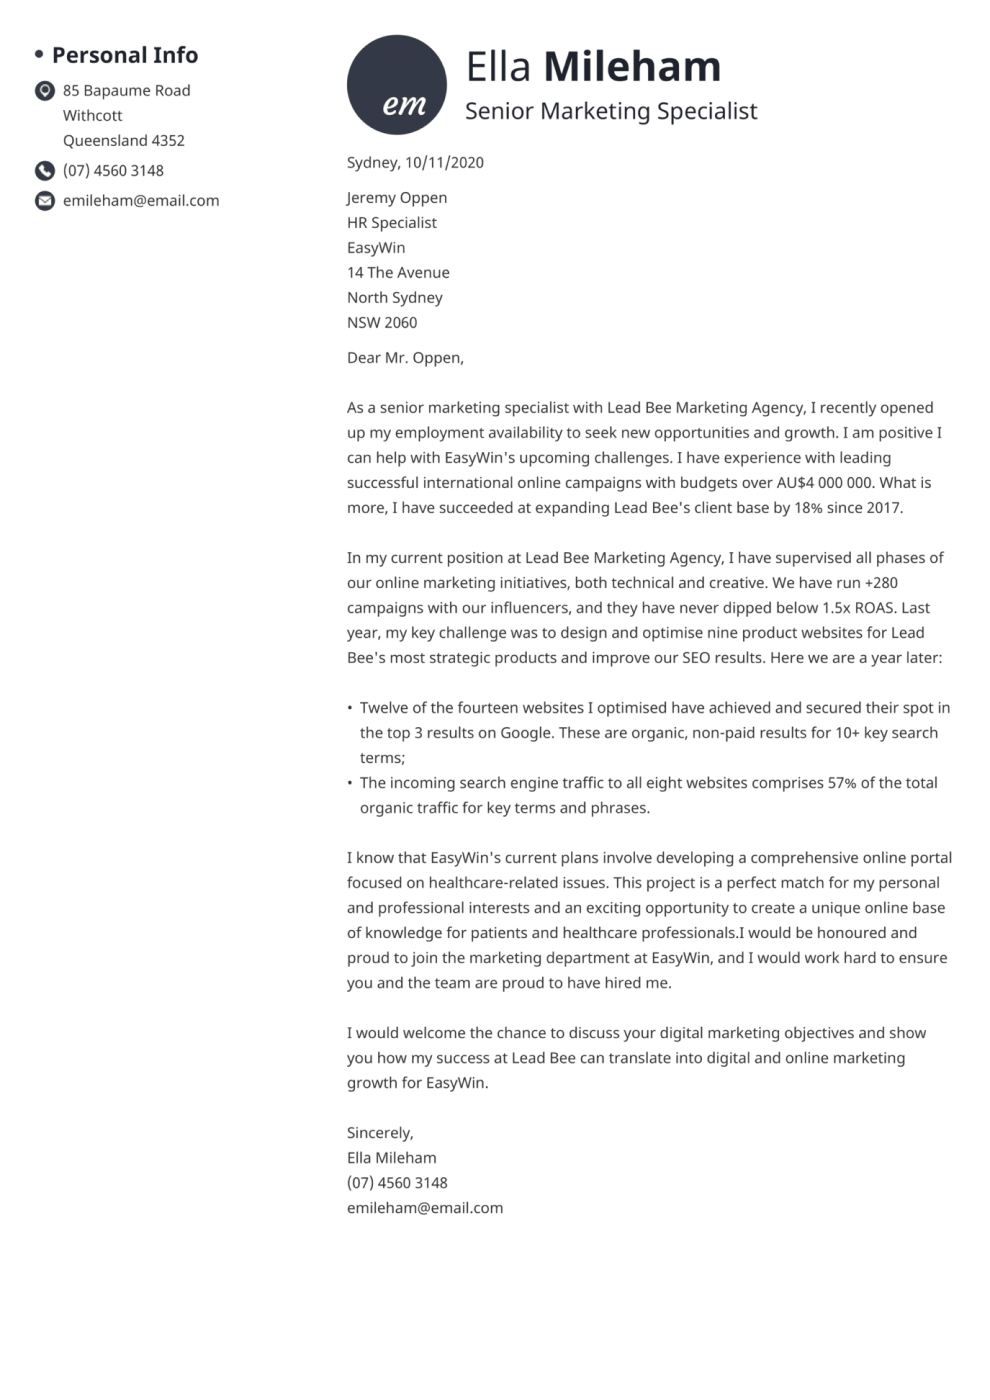 Initials cover letter template